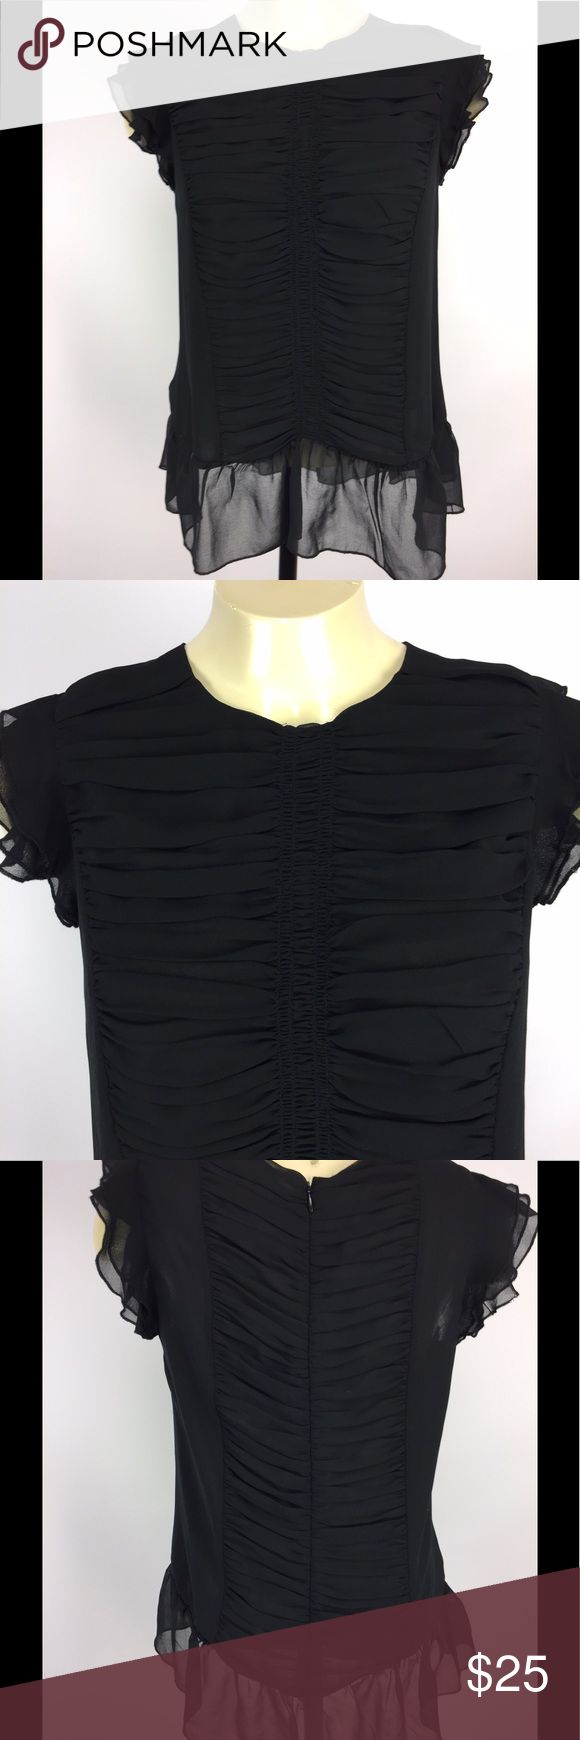 """NWT Who What Wear Black Chiffon Ruffle Top Sz S New with tags black chiffon flutter sleeve blouse by Who What Wear; size S. Zip back; ruching front and back.  Flat measurements: bust 18""""; waist 18""""; sleeve 2.5""""; overall length 24"""". who what wear Tops Blouses"""